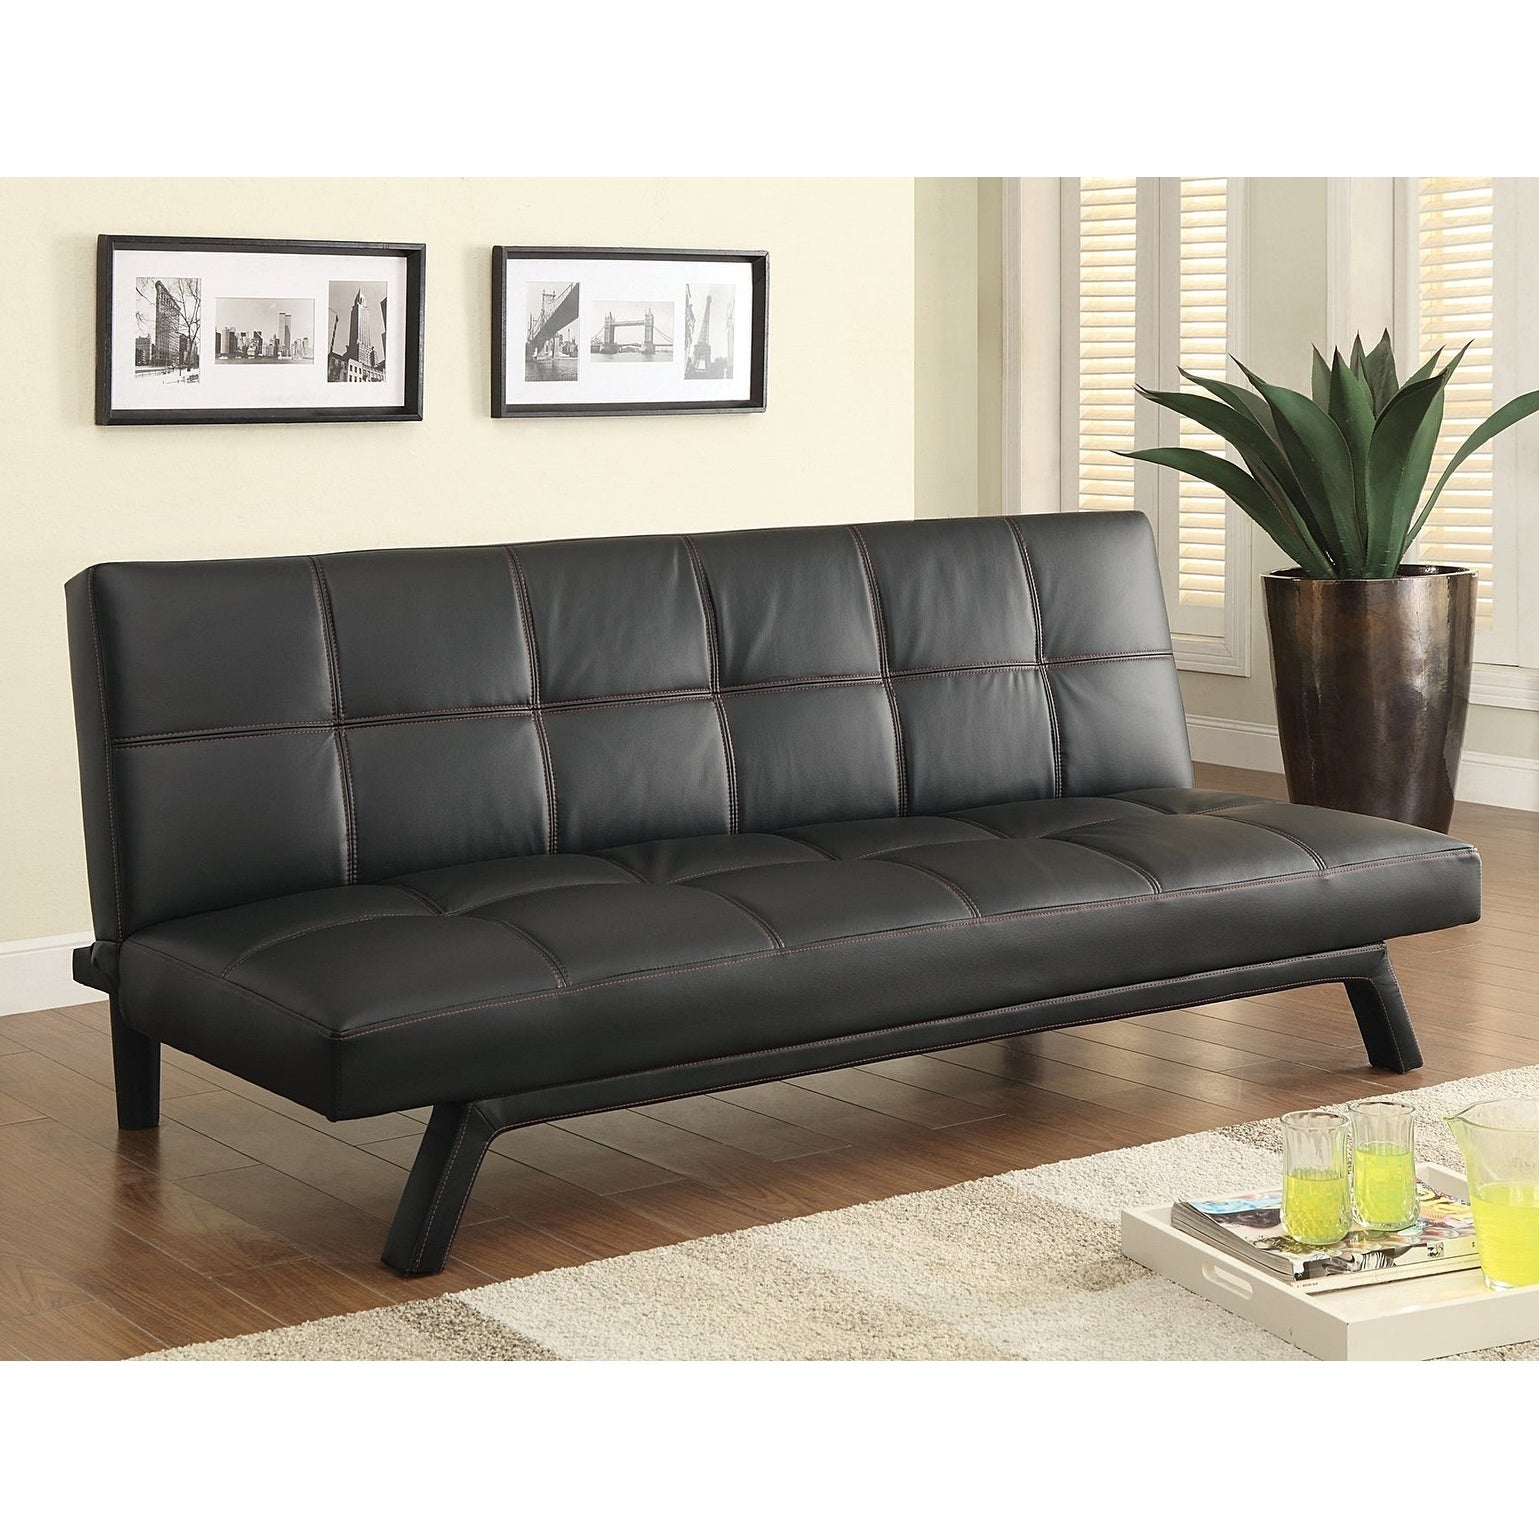 Calera Black Faux Leather with Contrast Stitching Futon Sleeper Sofa